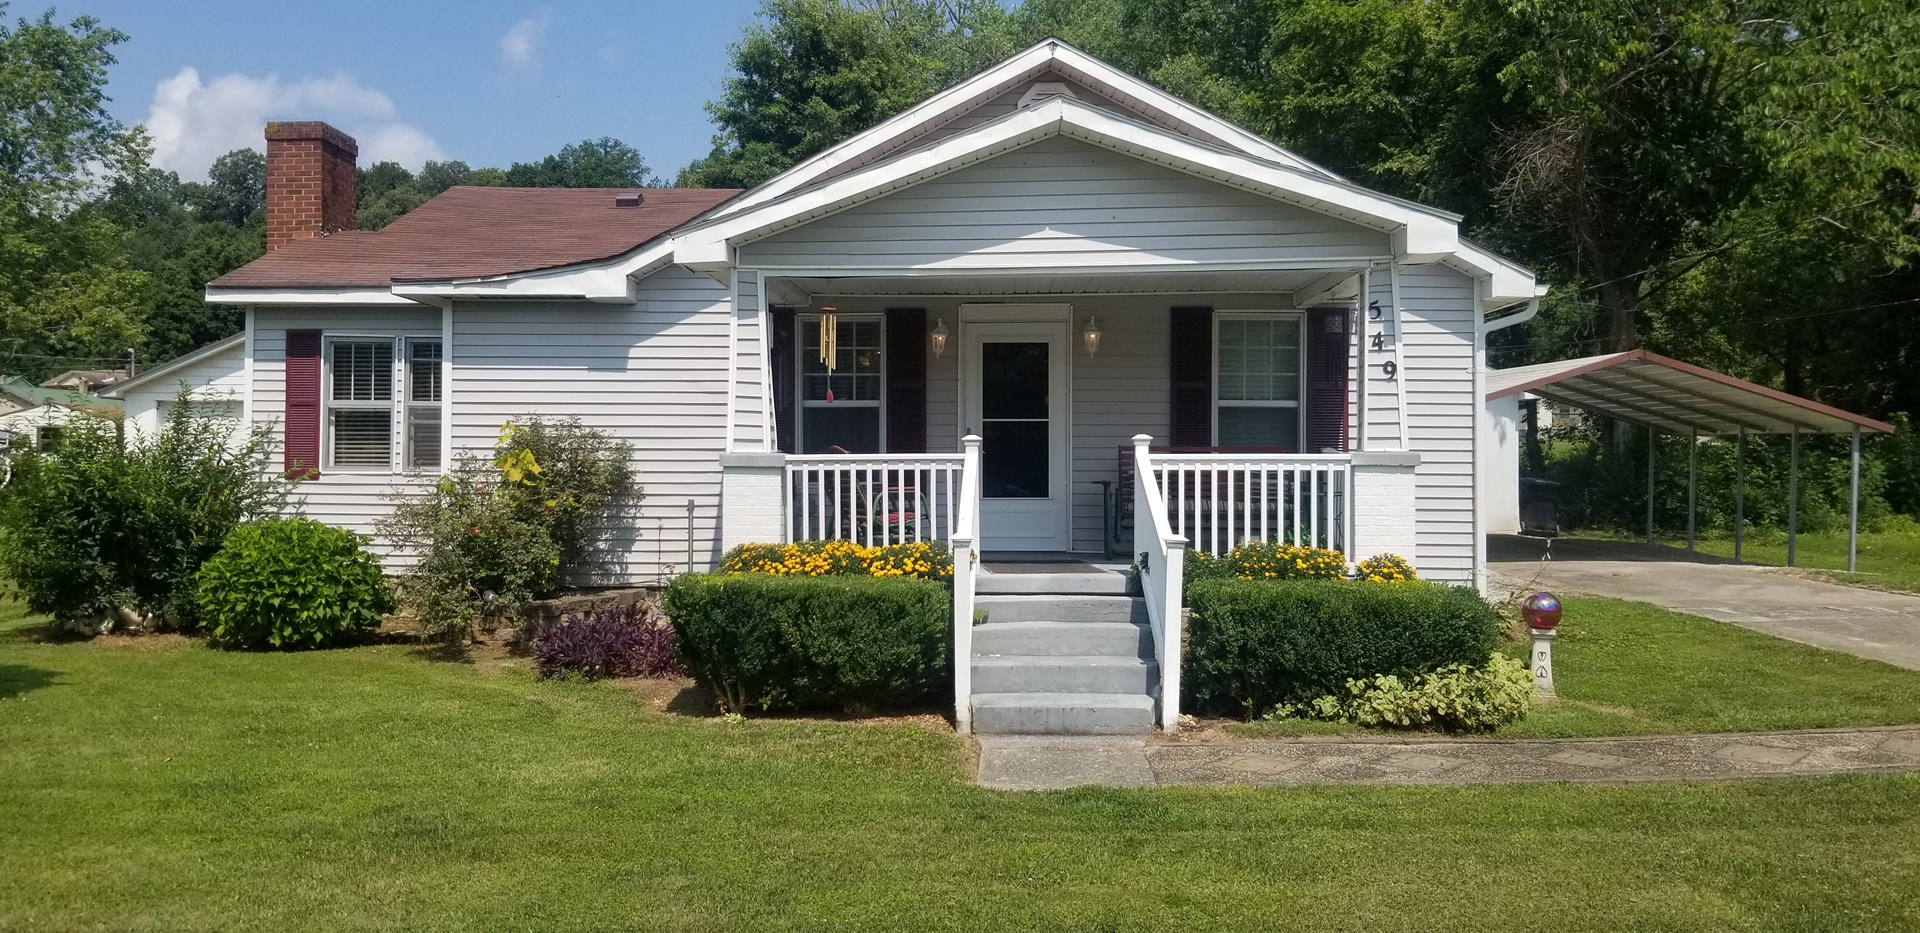 Home in town city utilities great location